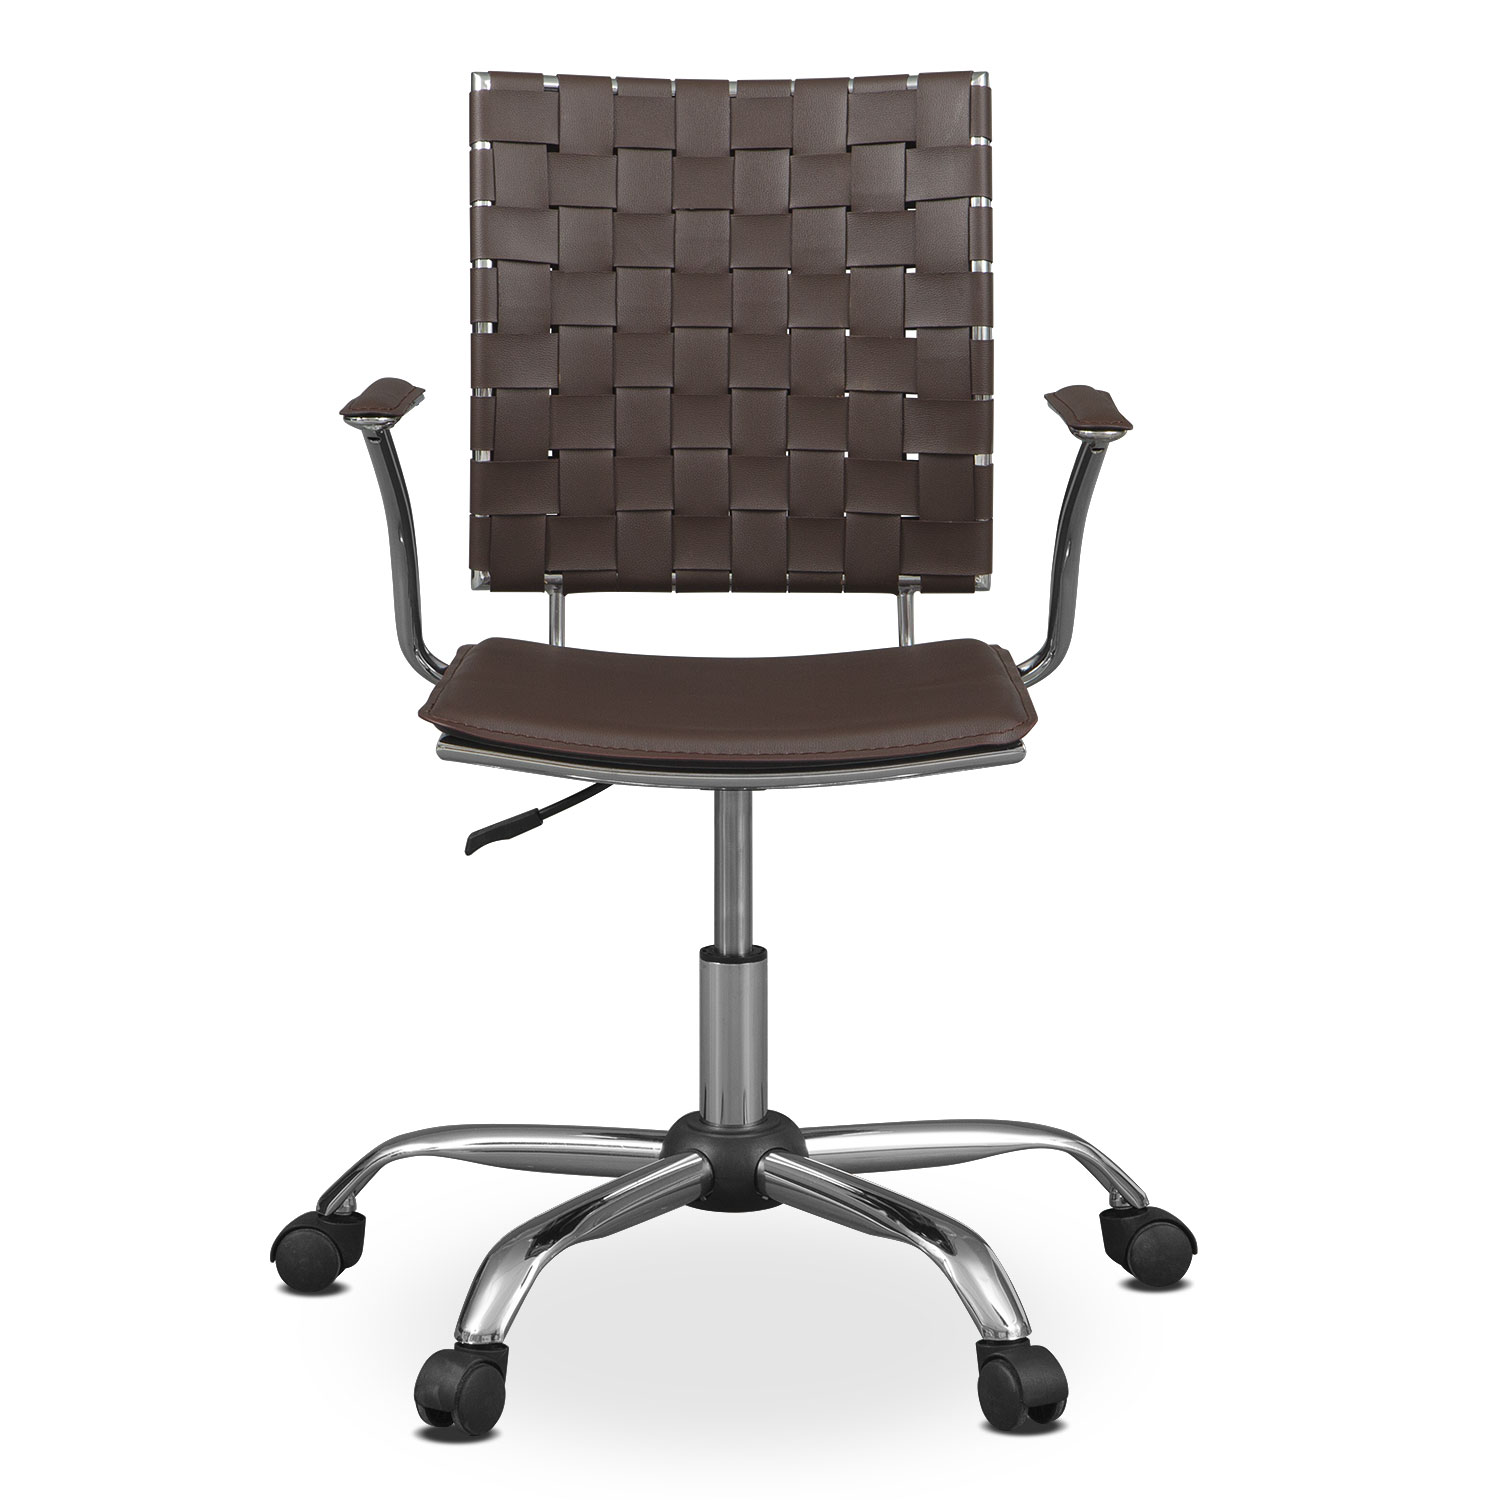 Zeno Office Arm Chair Brown Value City Furniture : 424183 from www.valuecityfurniture.com size 1500 x 1500 jpeg 137kB